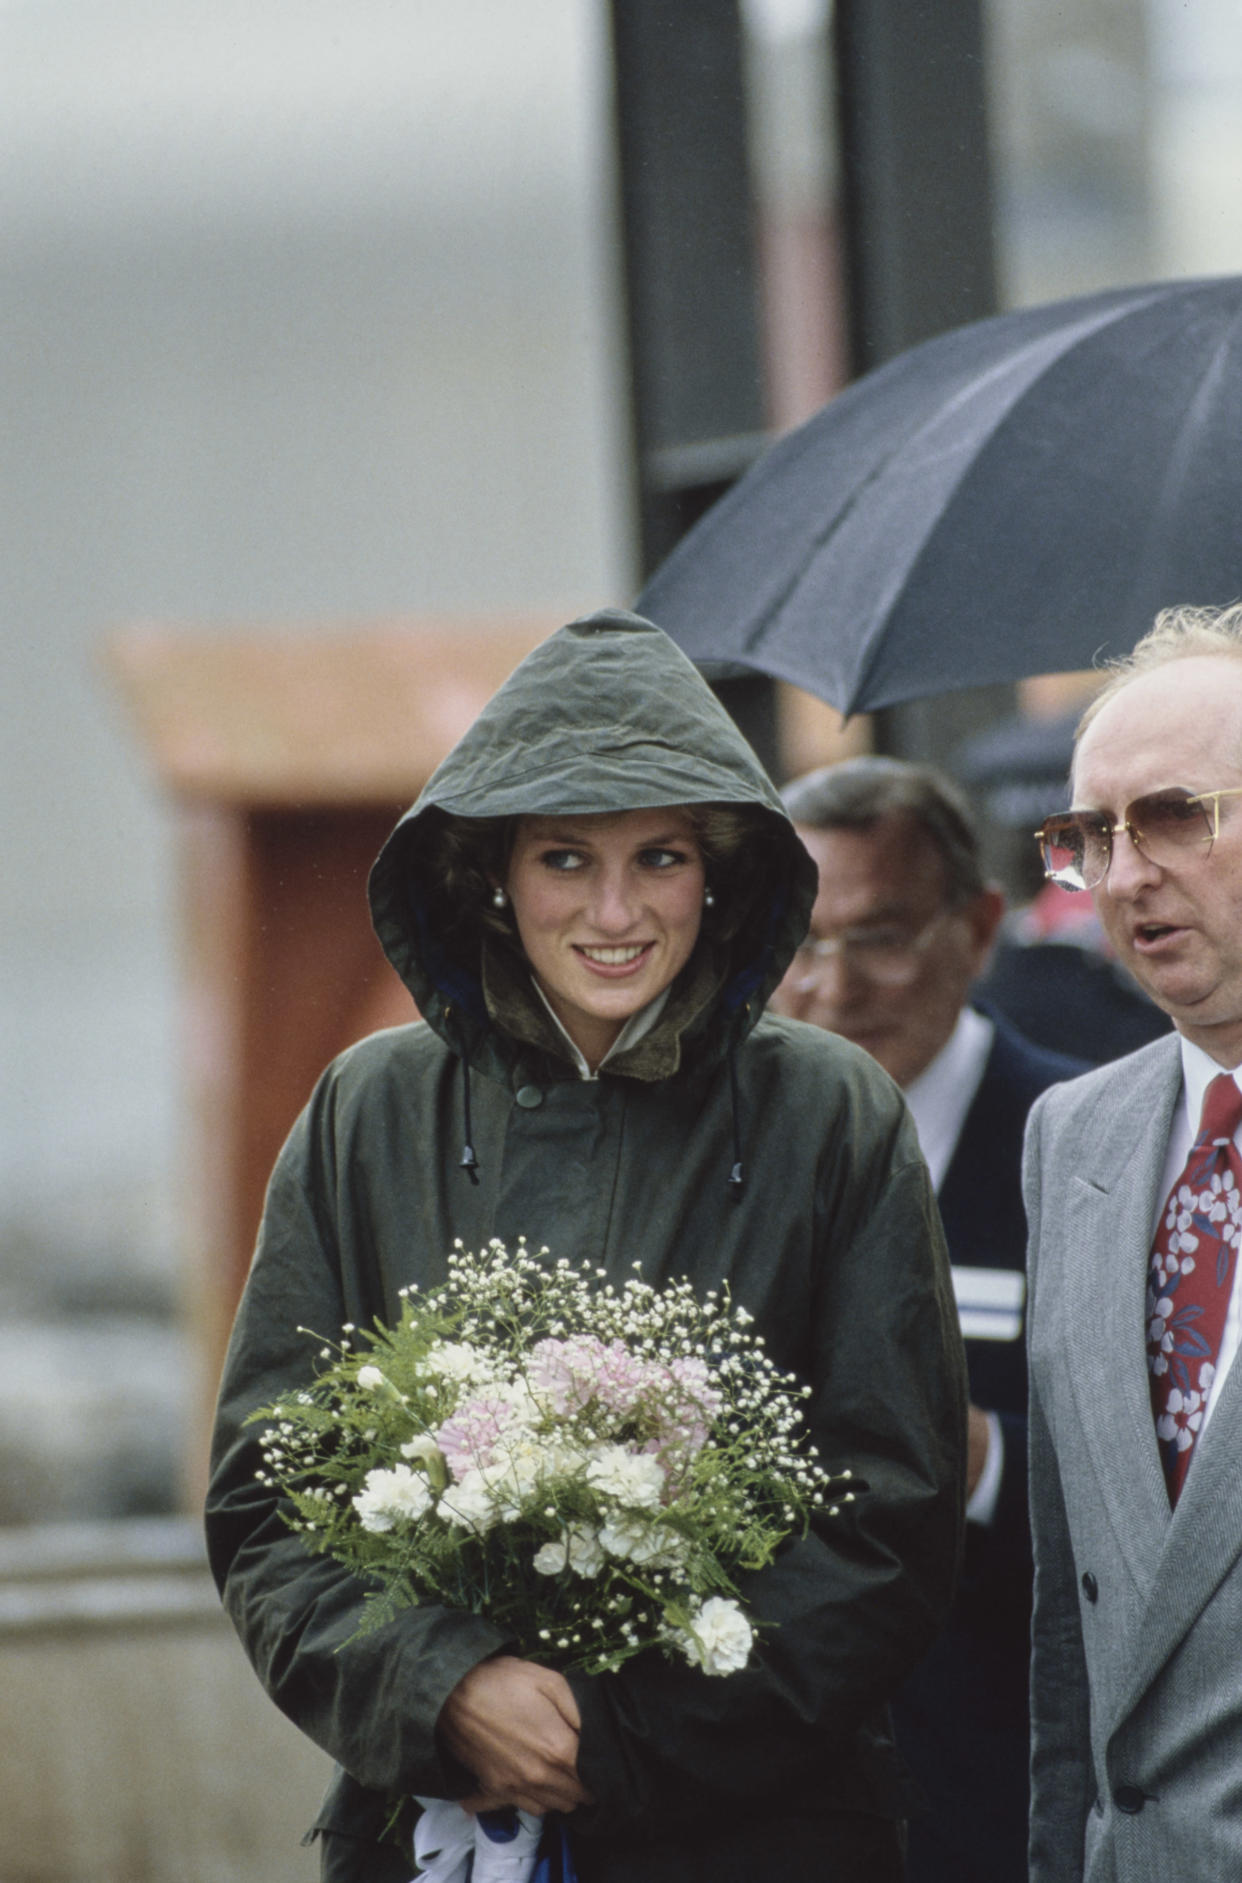 Diana dons a Barbour jacket for a visit to Barra in the Outer Hebrides of Scotland on 3 July, 1985. (Getty Images)